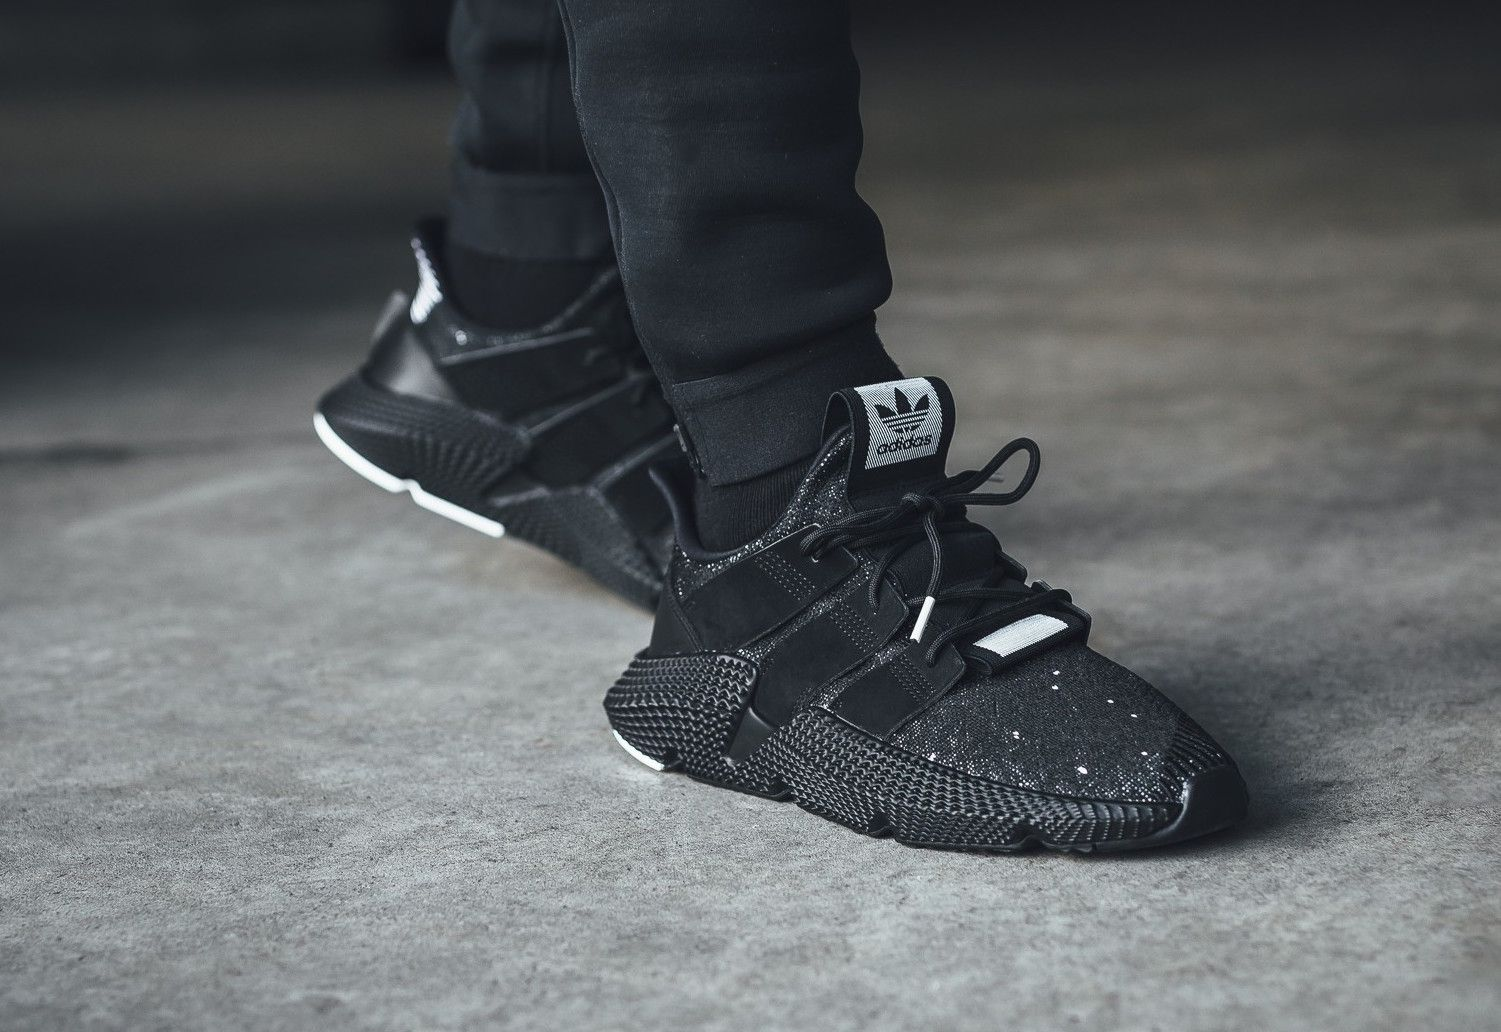 adidas Prophere OG ad56 i 2019 Sneakers nike, Sneakers